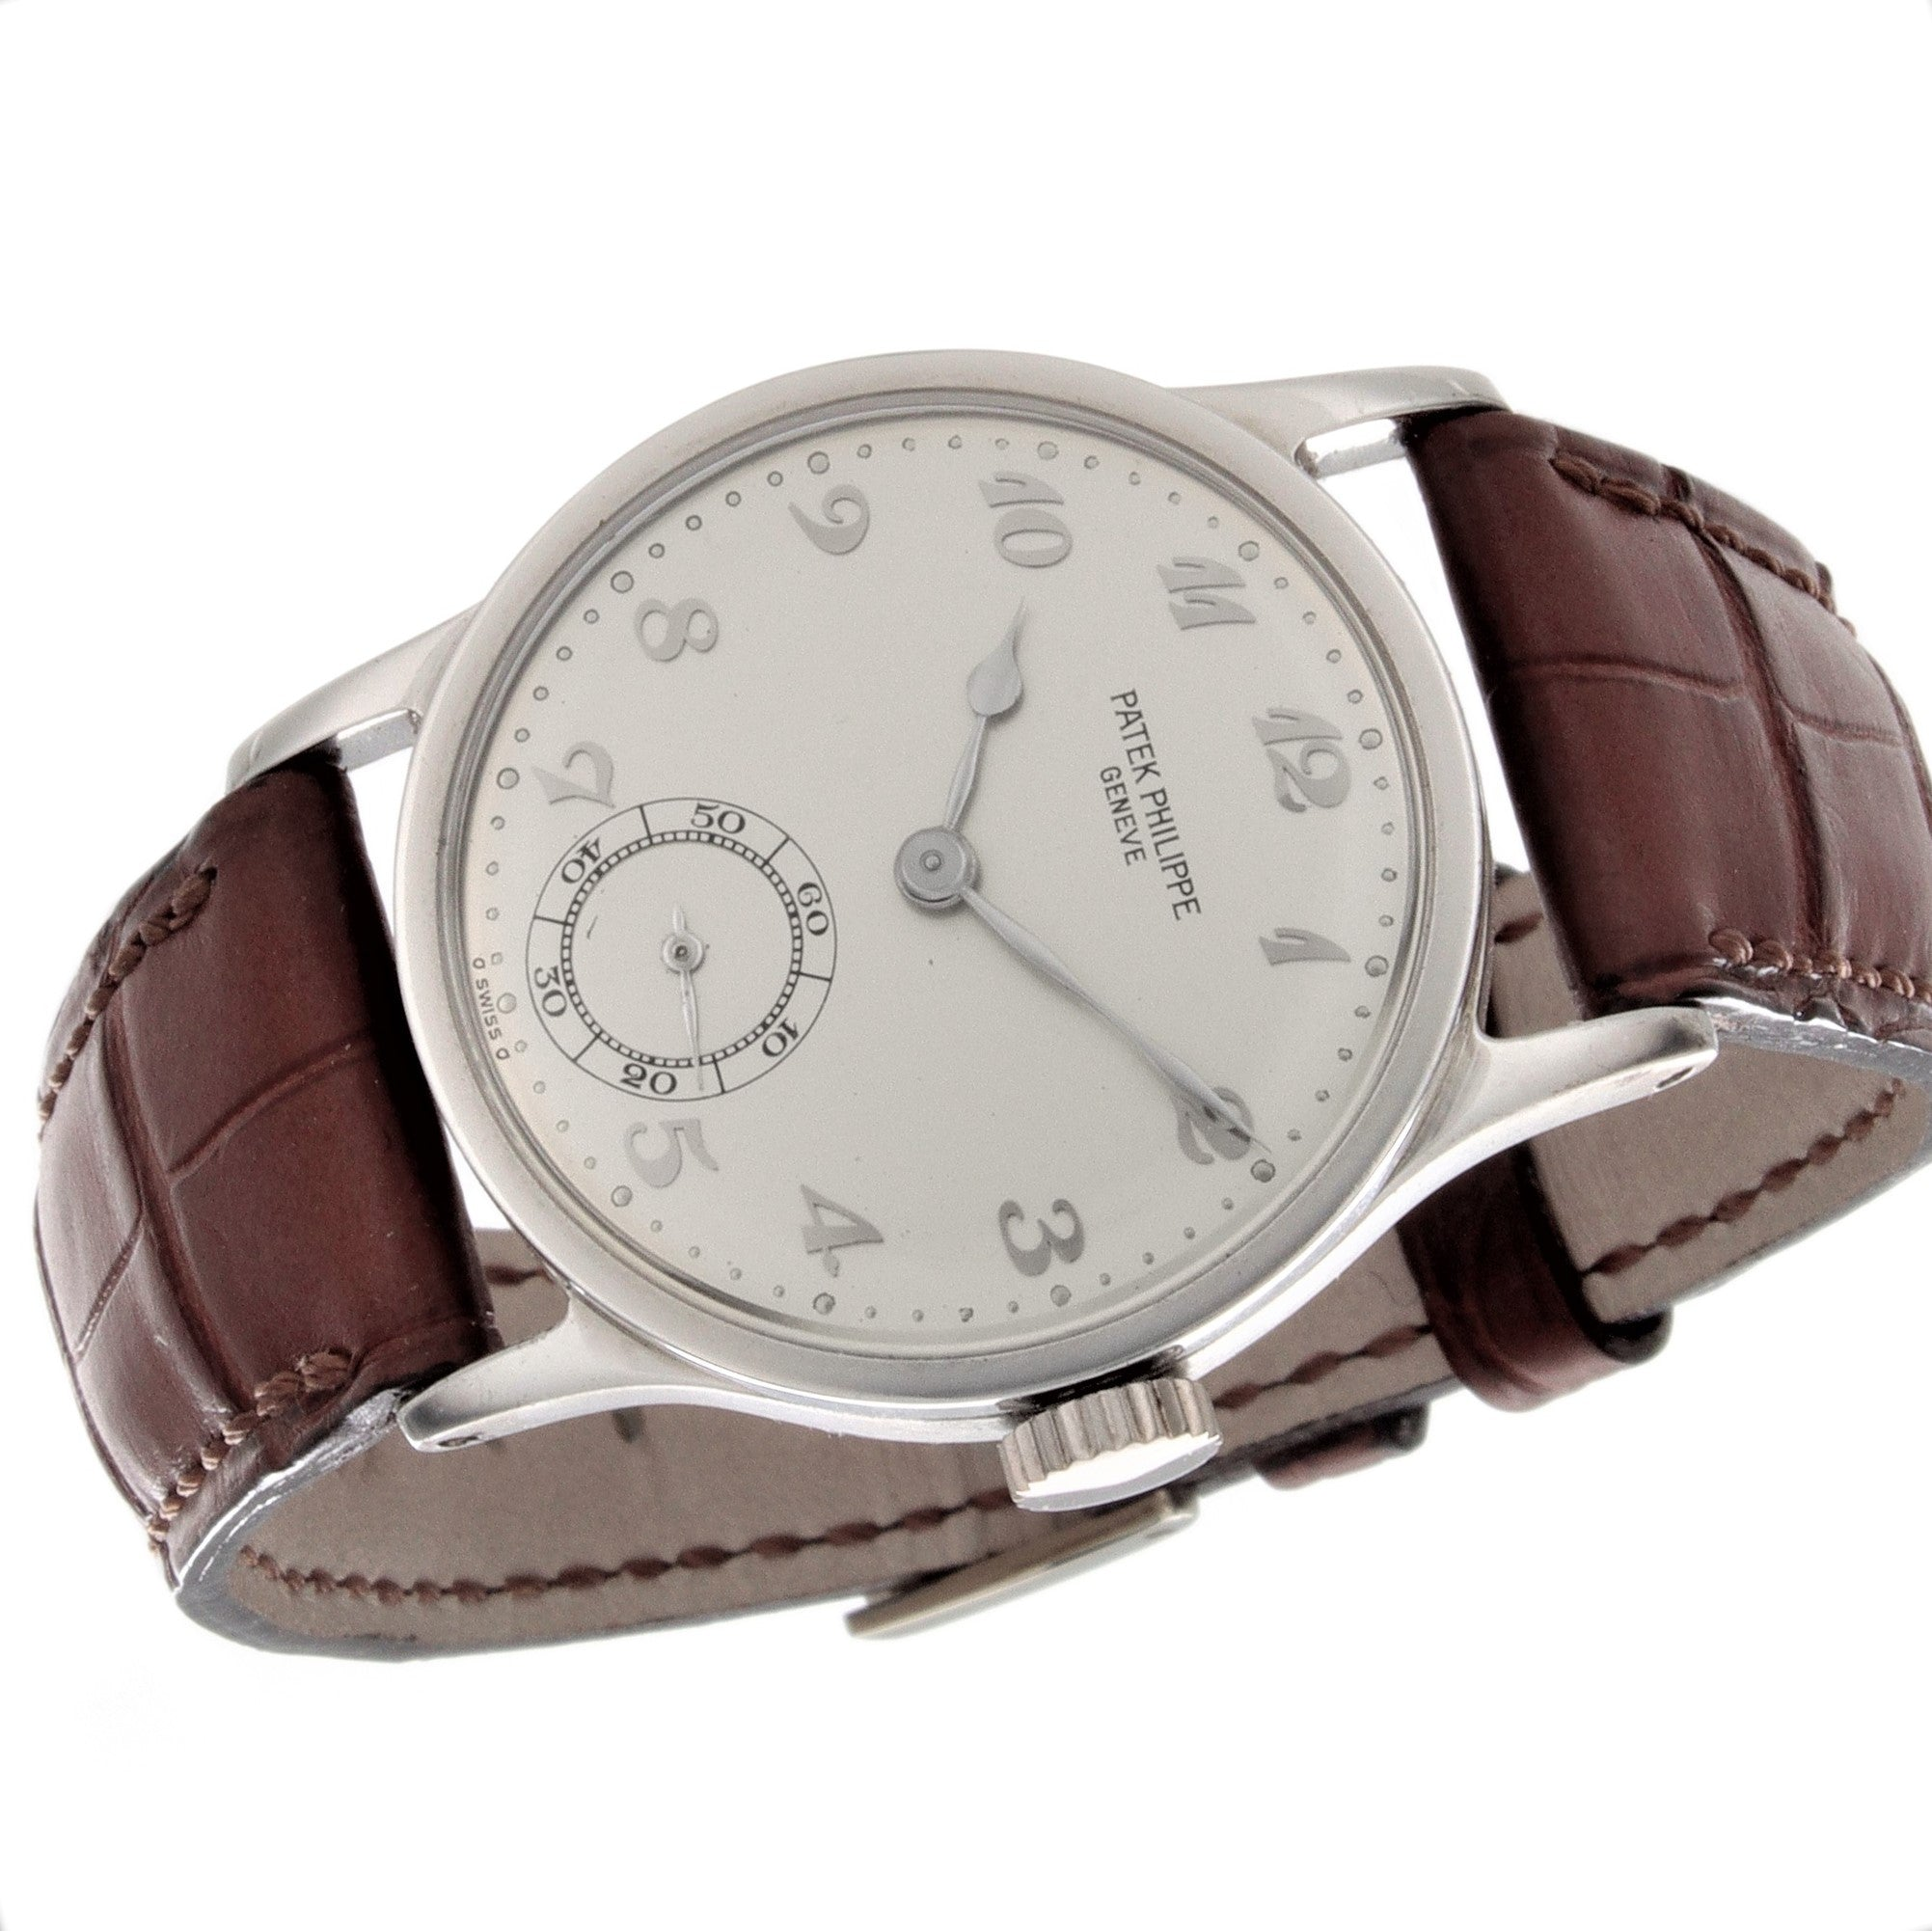 Patek Philippe 96P Platinum Calatrava Watch